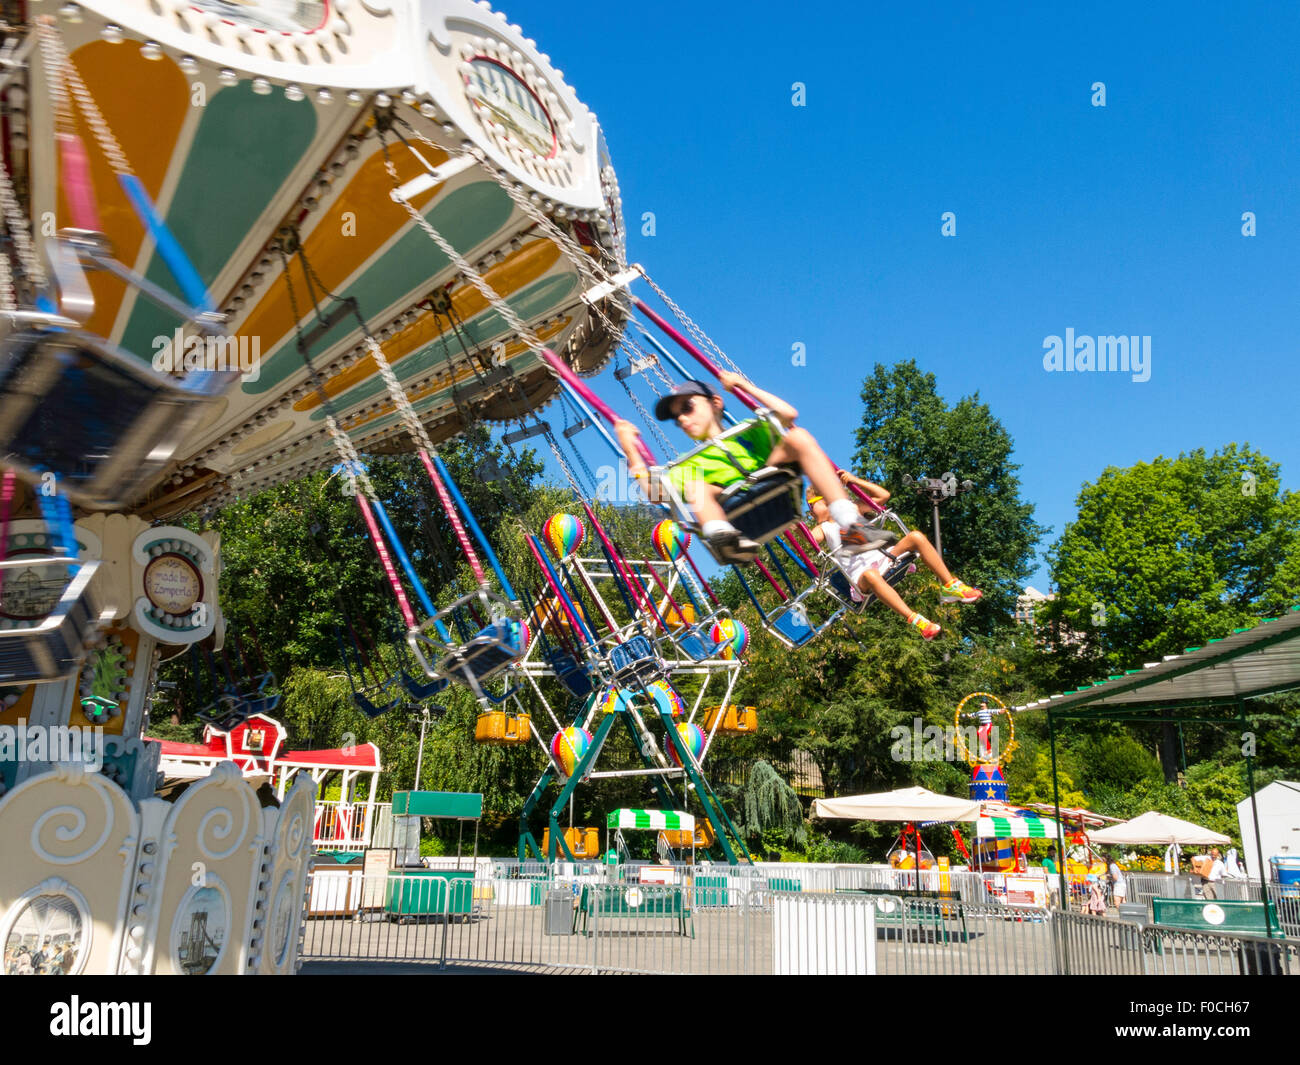 Victorian Gardens Carnival In Central Park Nyc Stock Photo 86328767 Alamy